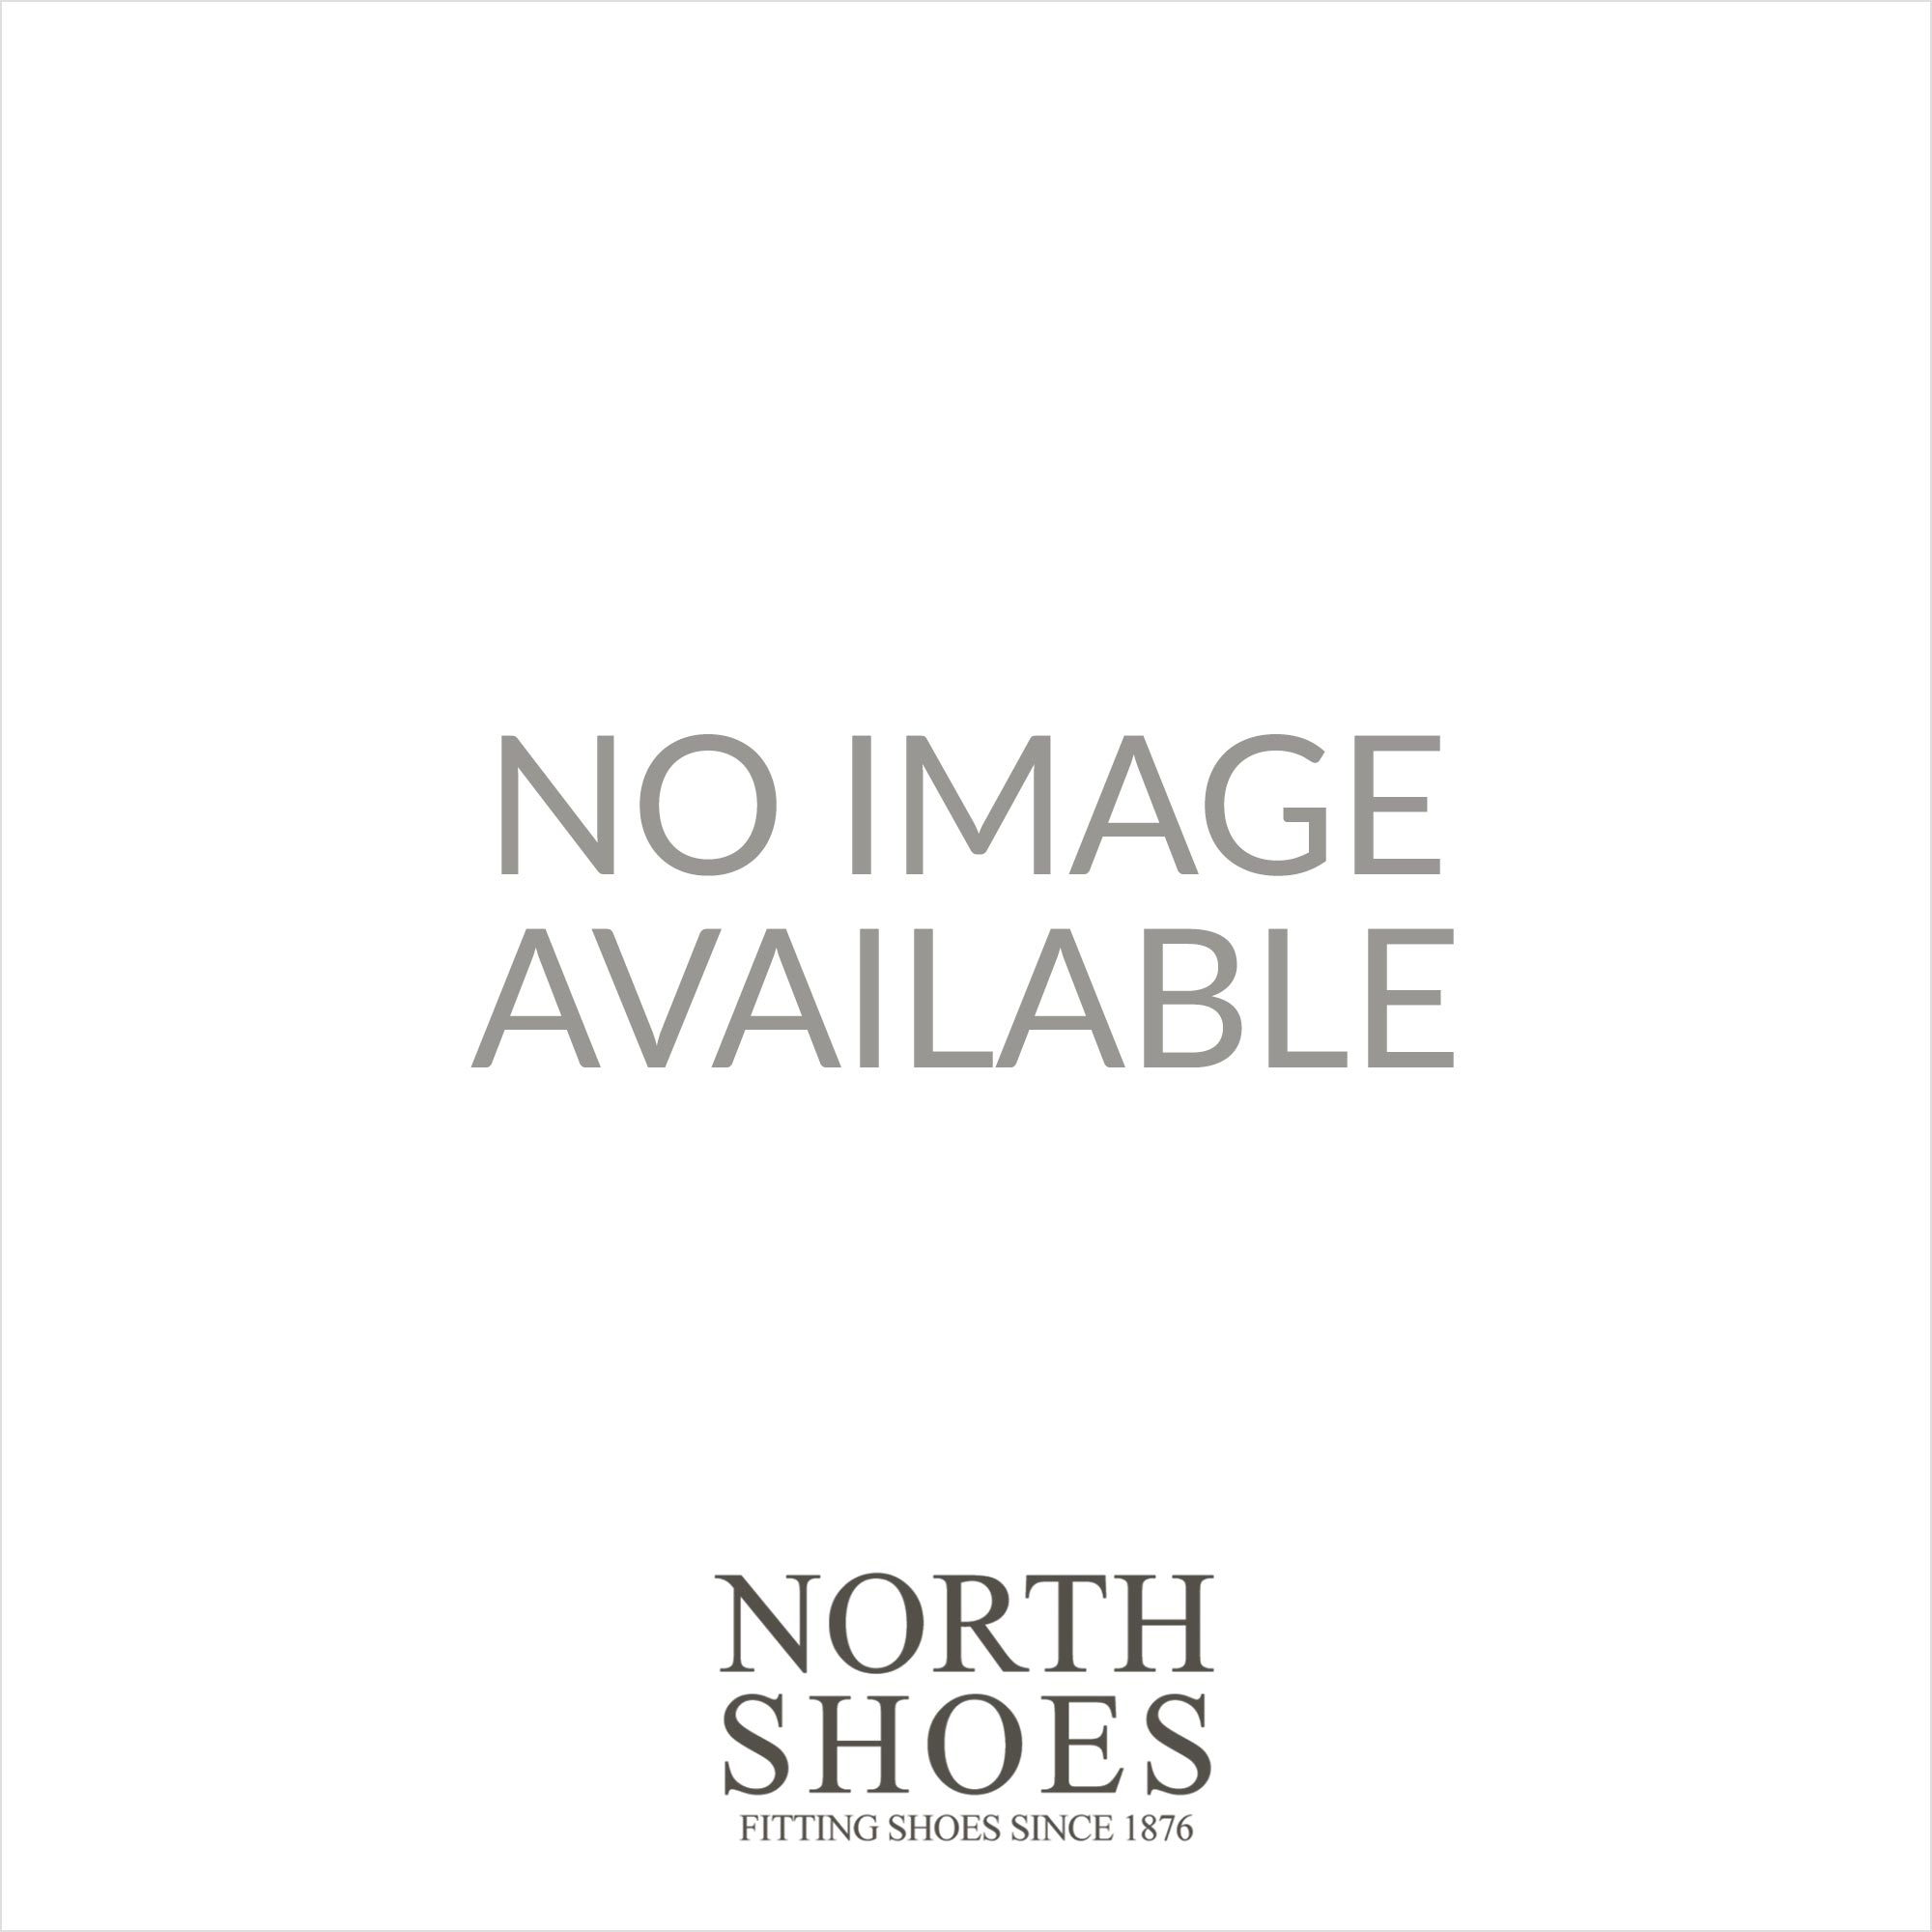 e9b041ceb1b8 Clarks Sarla Cadence Tan Perforated Leather Womens Open Toe Sandal - Clarks  from North Shoes UK